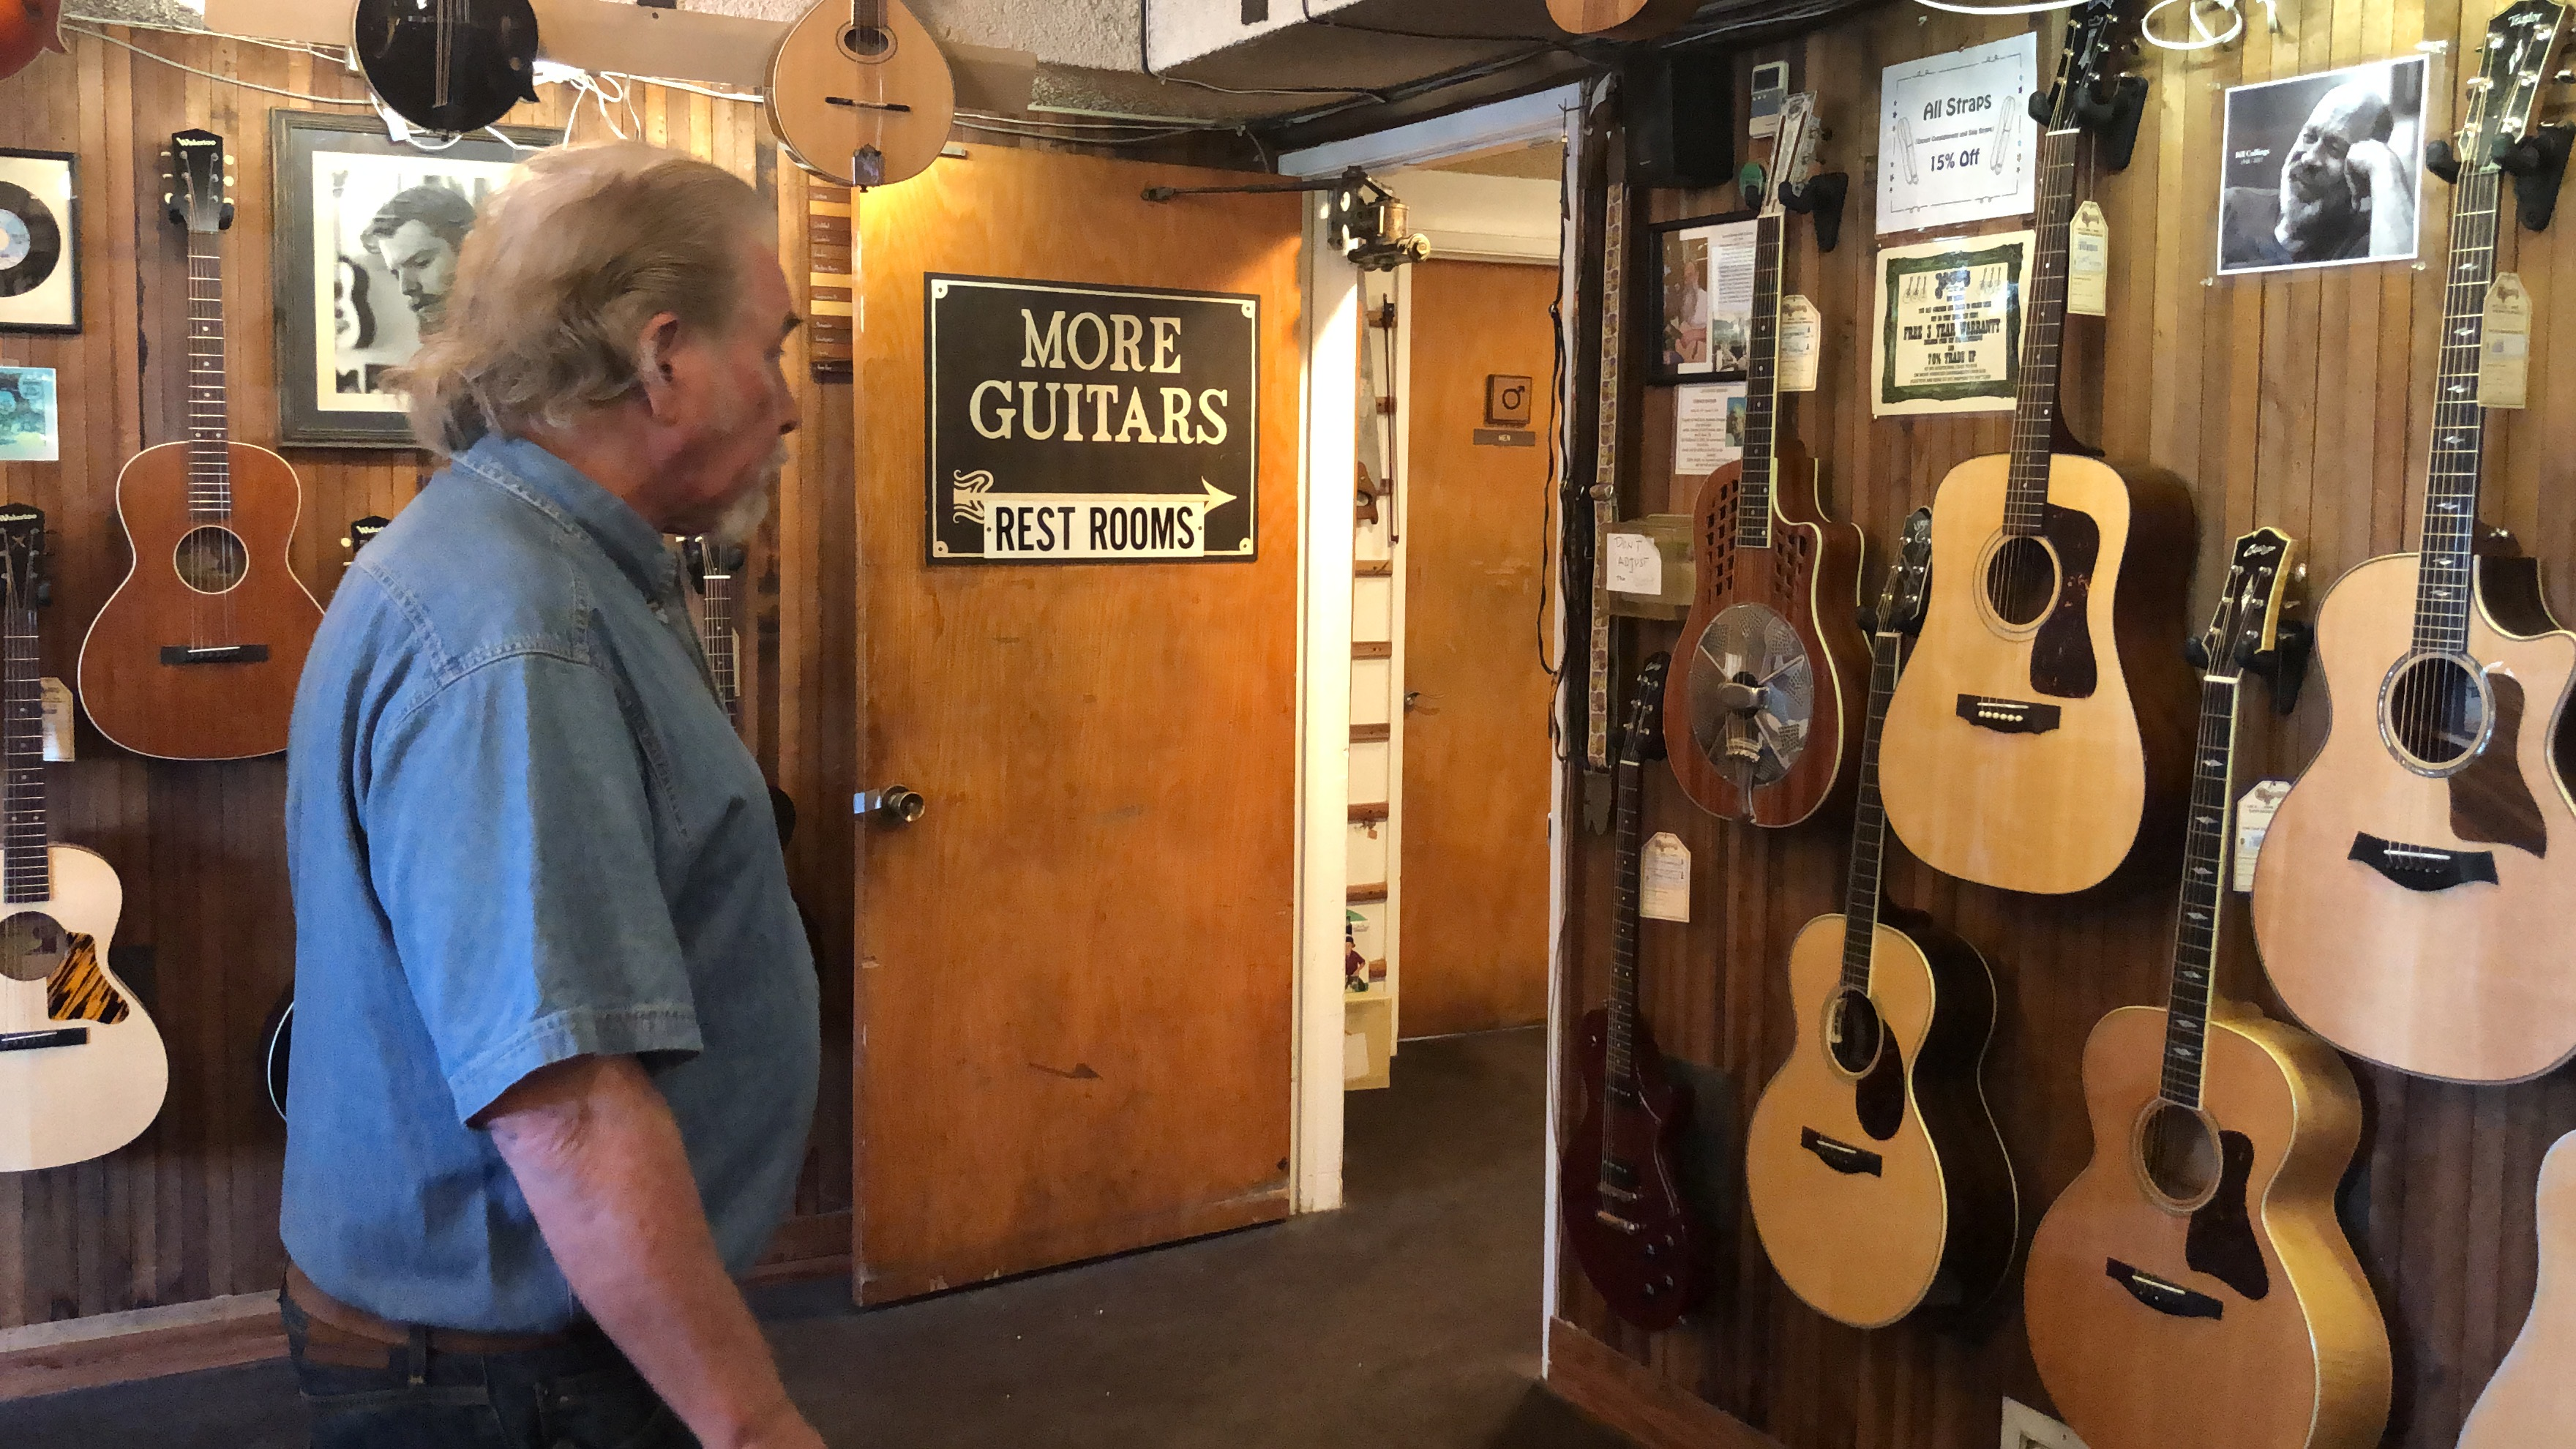 There guitars everywhere at McCabe's Guitar Shop in Manhattan Beach CA.